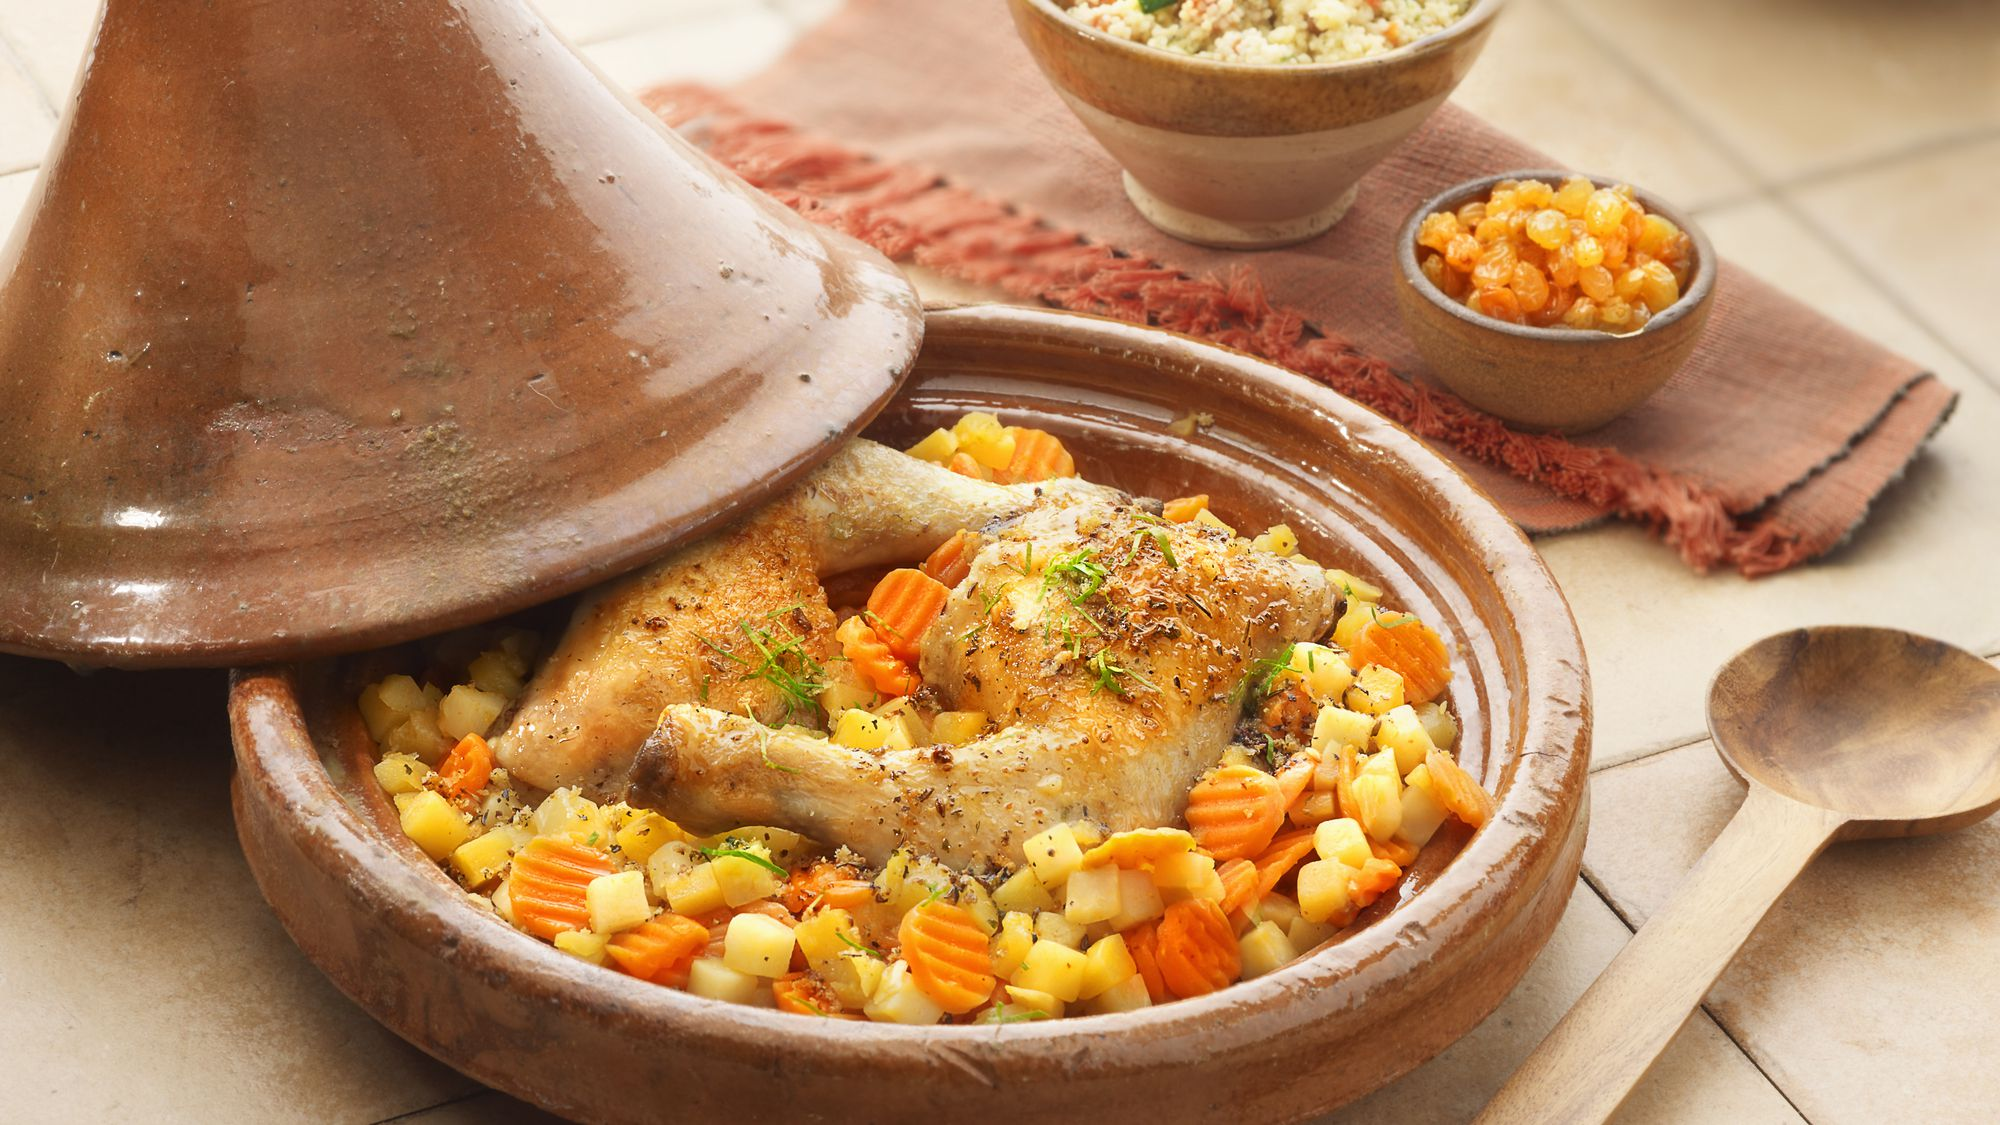 Moroccan Chicken Tagine, Potatoes, and Carrots Recipe